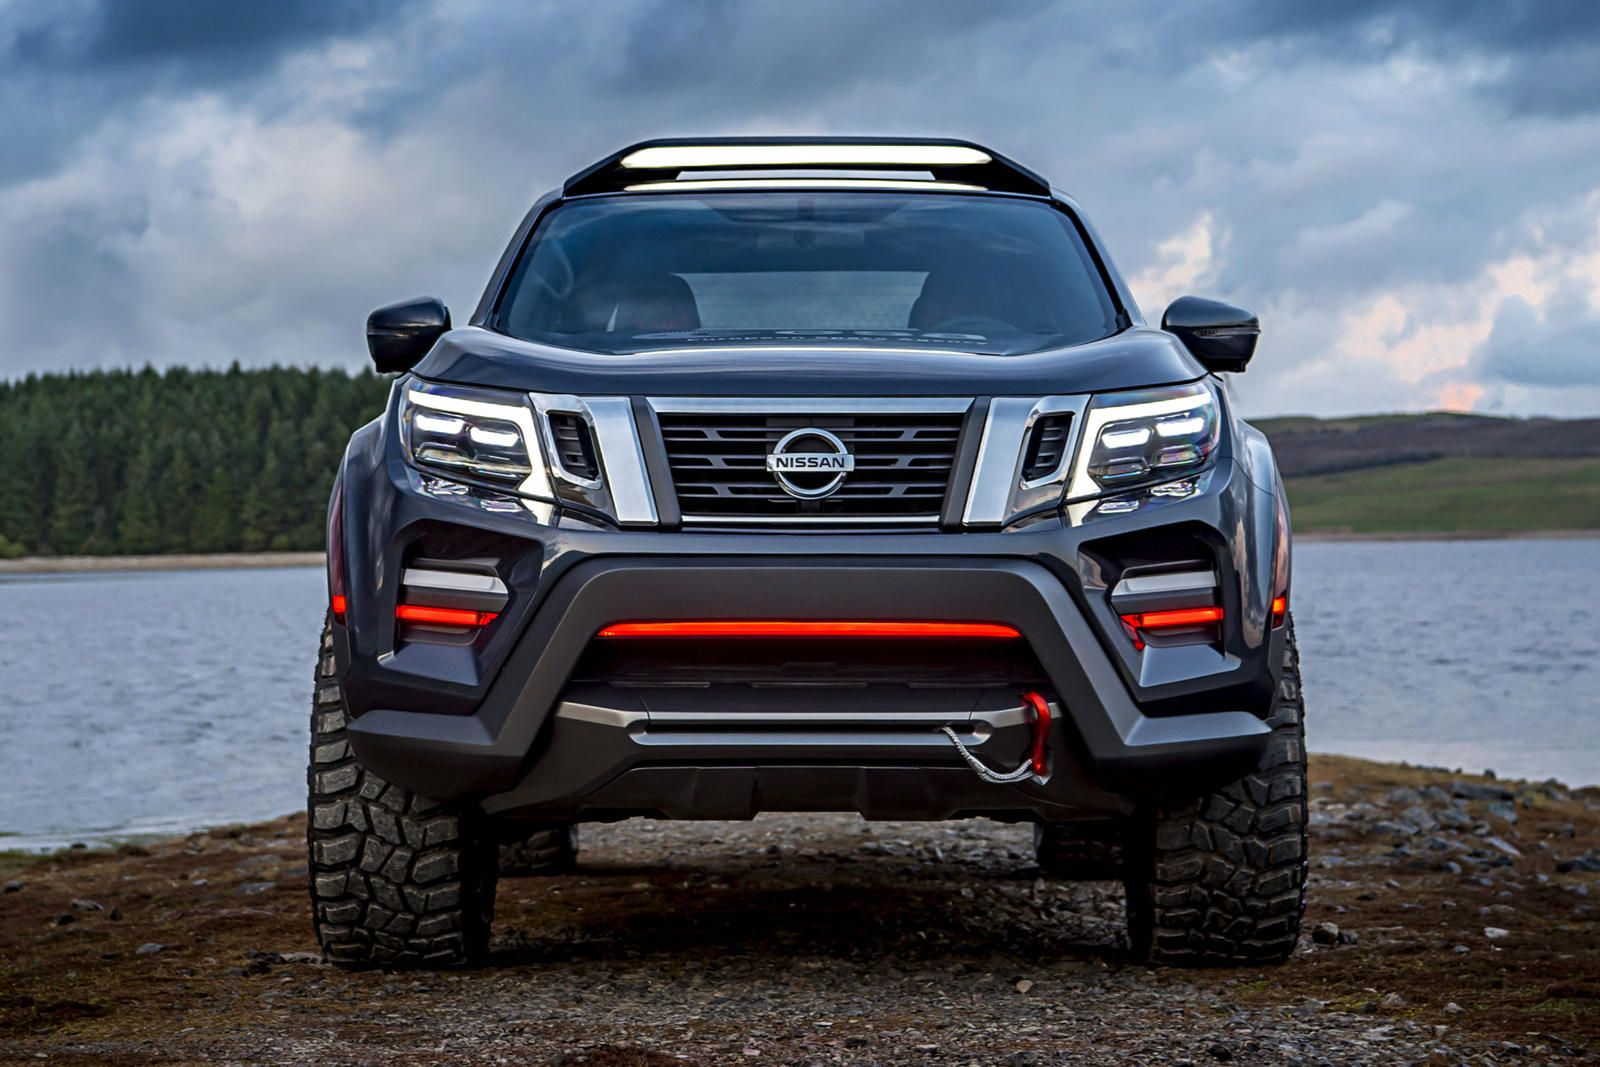 2021 Nissan Frontier Getting Radical Redesign In 2020 With Images